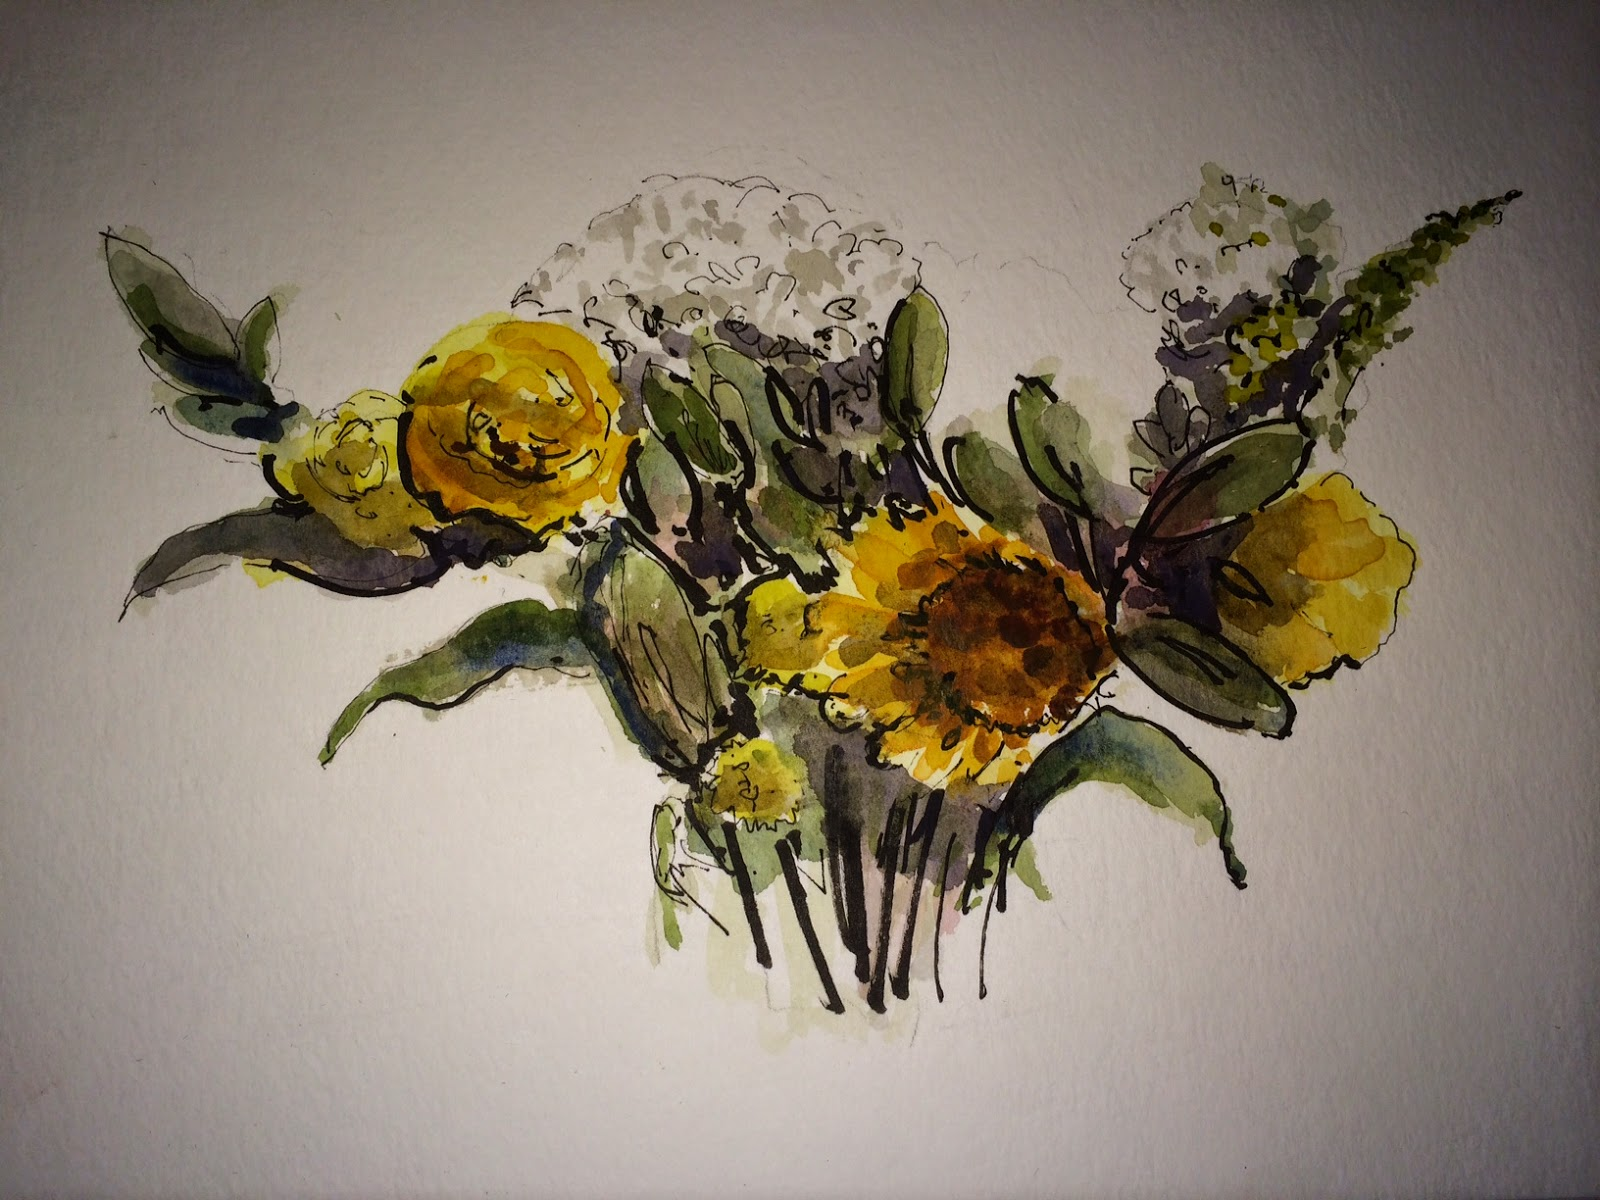 Still life watercolor of flowers | Business, Life & Design